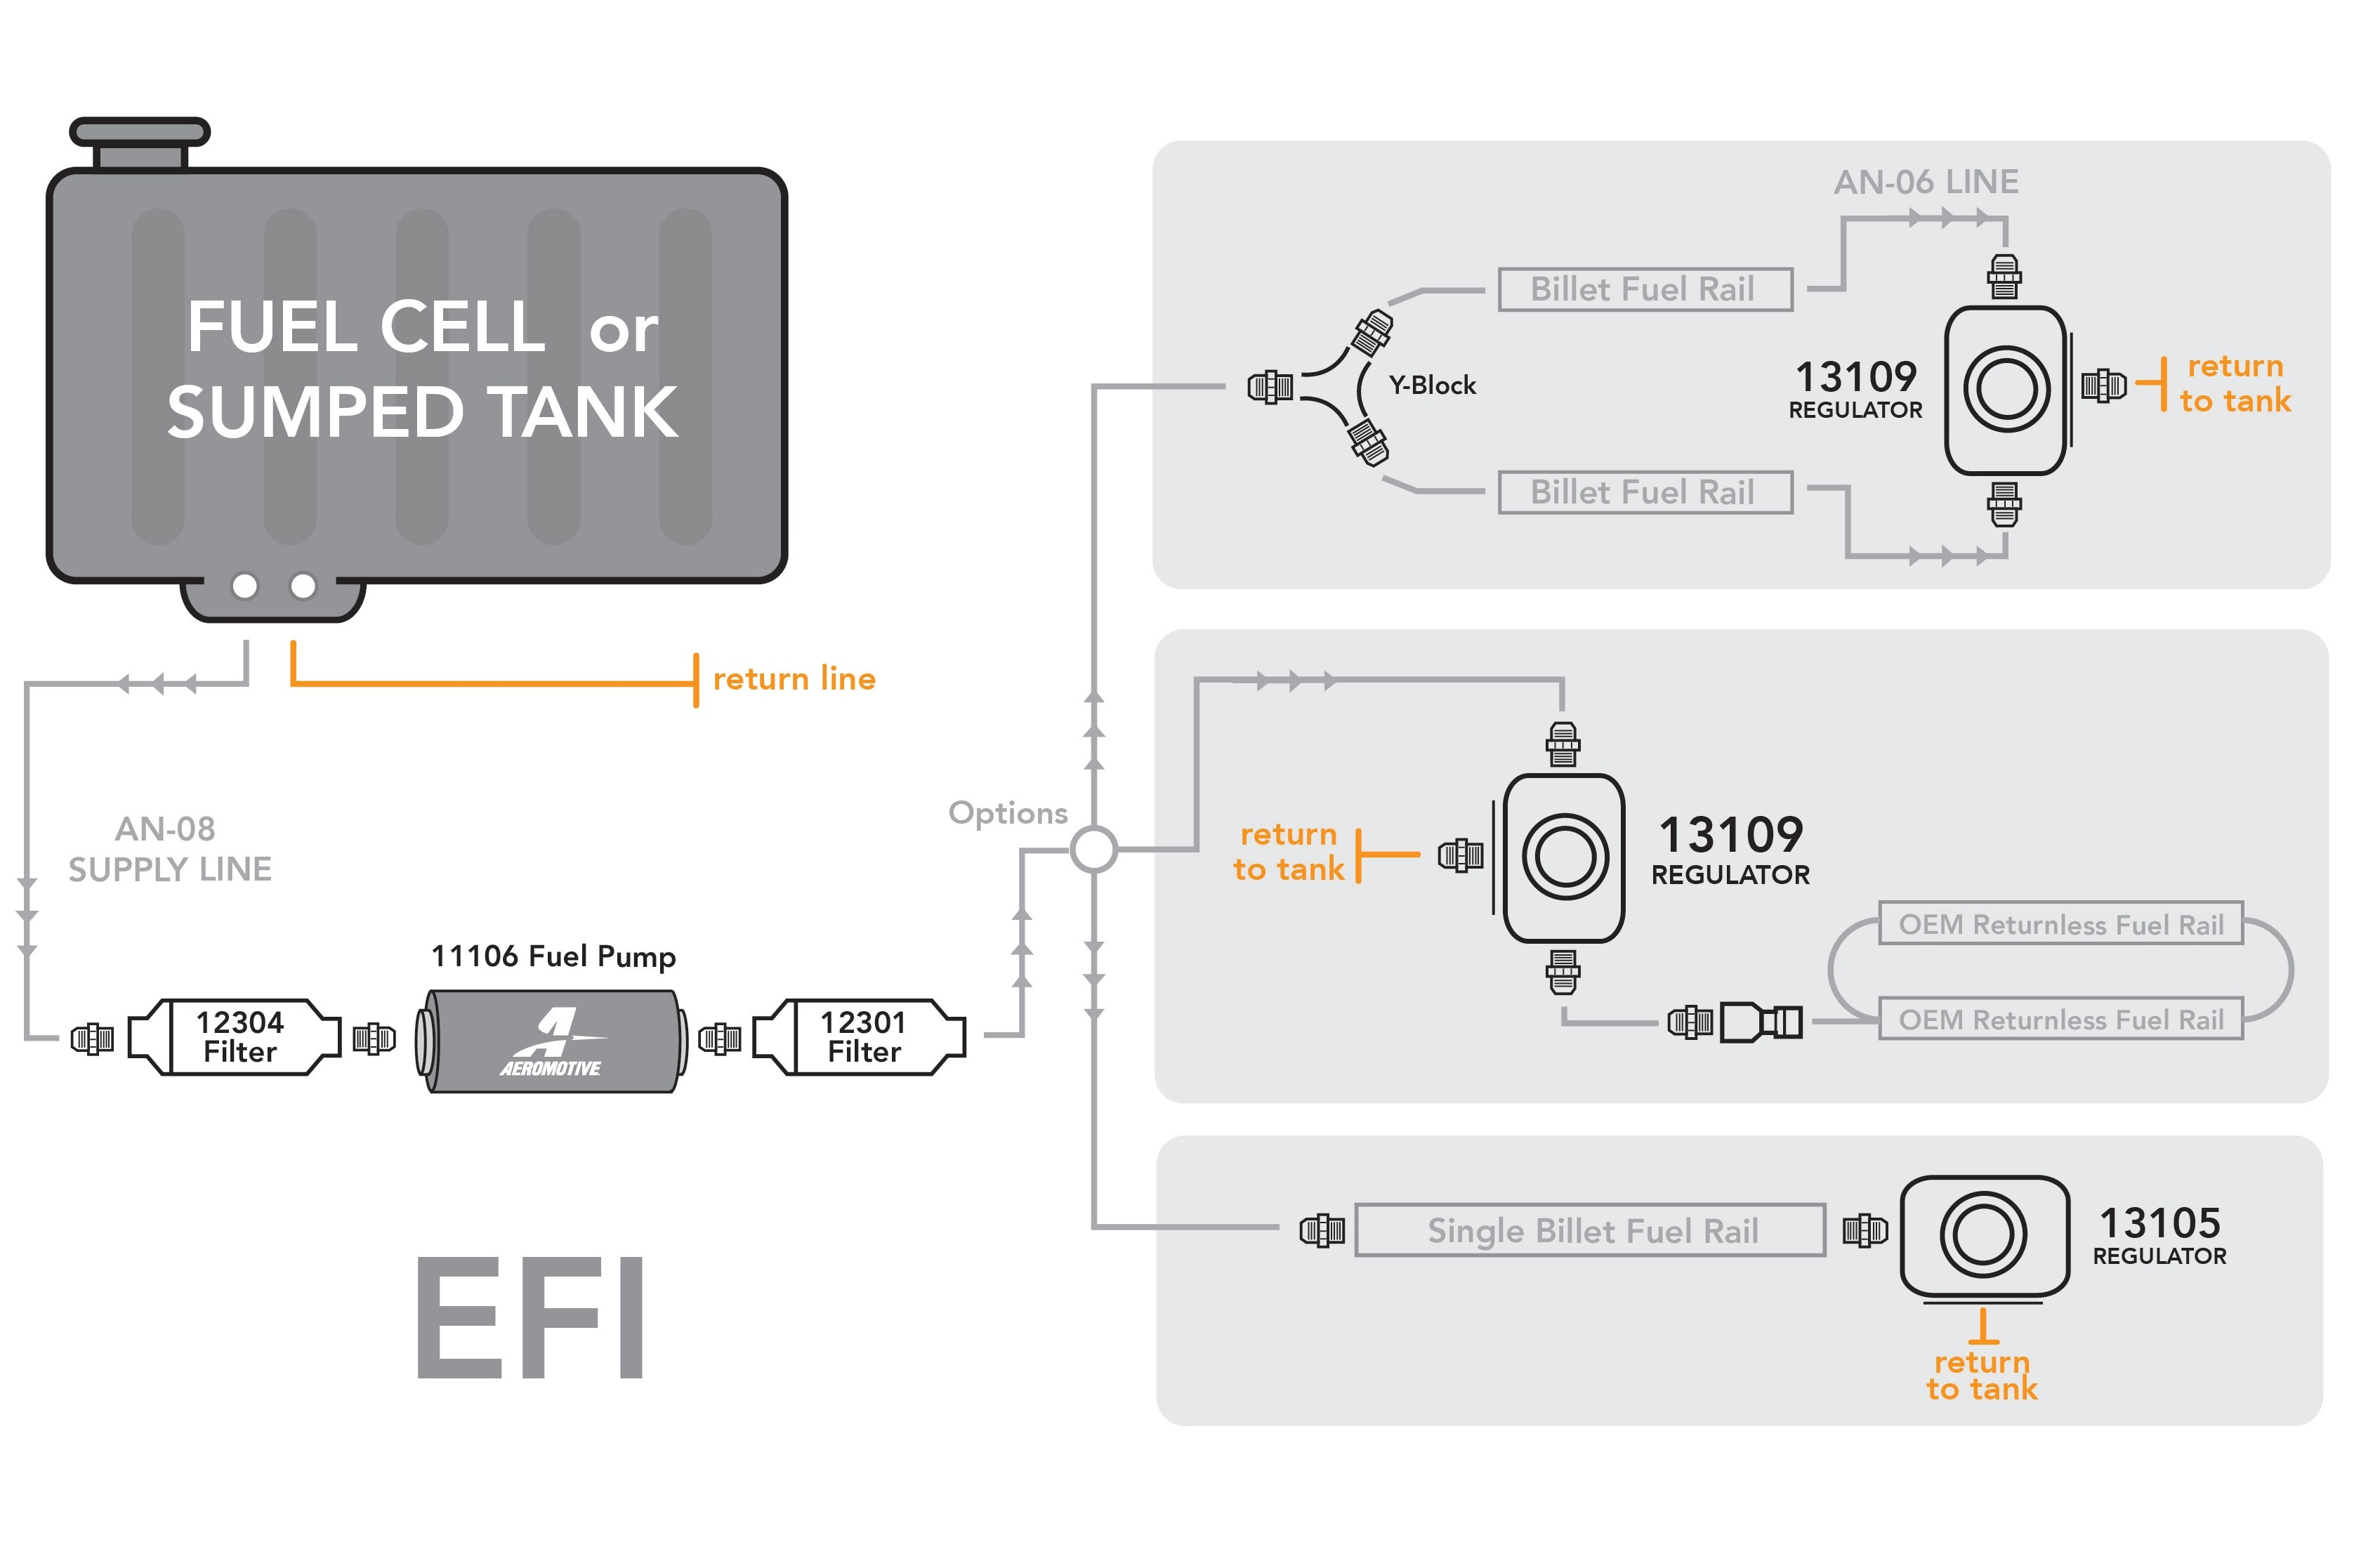 Fuel Injection System Diagram 1jz Series Ecu Wiring Harness Aeromotive Selecting Ponents Hot Rod Network Of